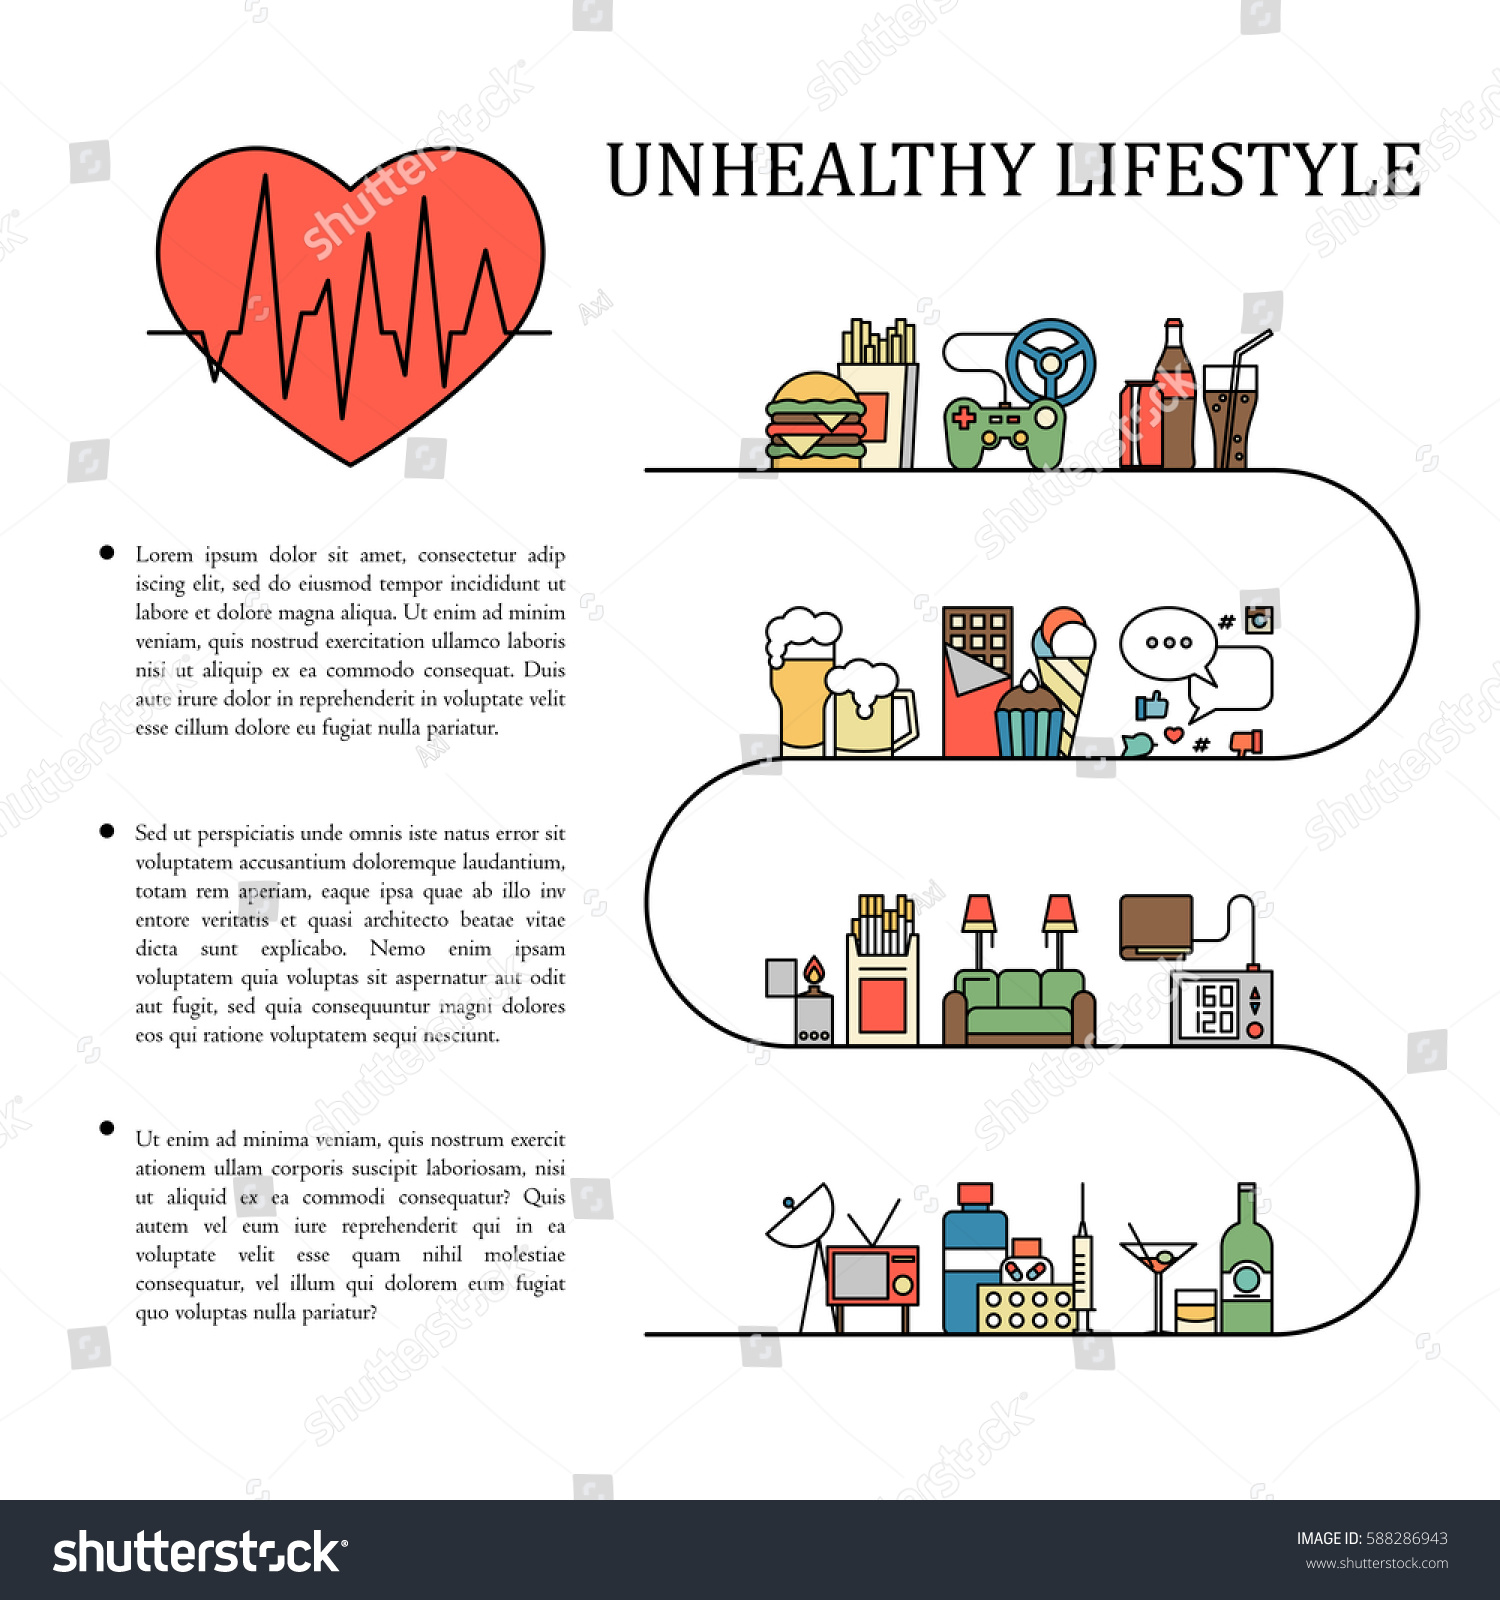 Healthy And Unhealthy Lifestyle Concept. Stock Vector ... |Unhealthy Lifestyle Icon